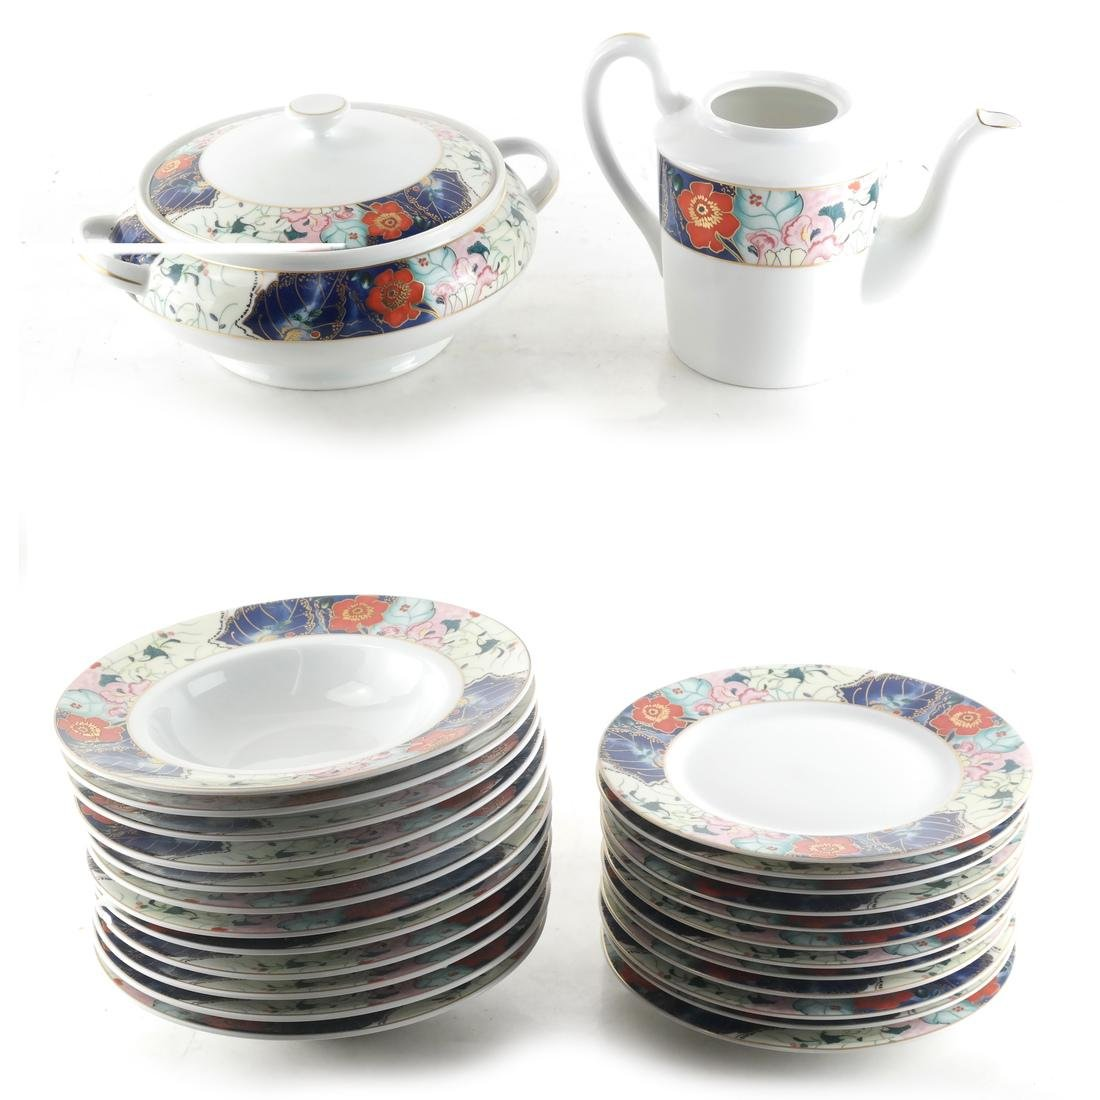 Limoges Raynaud & Co. Partial Dinnerware